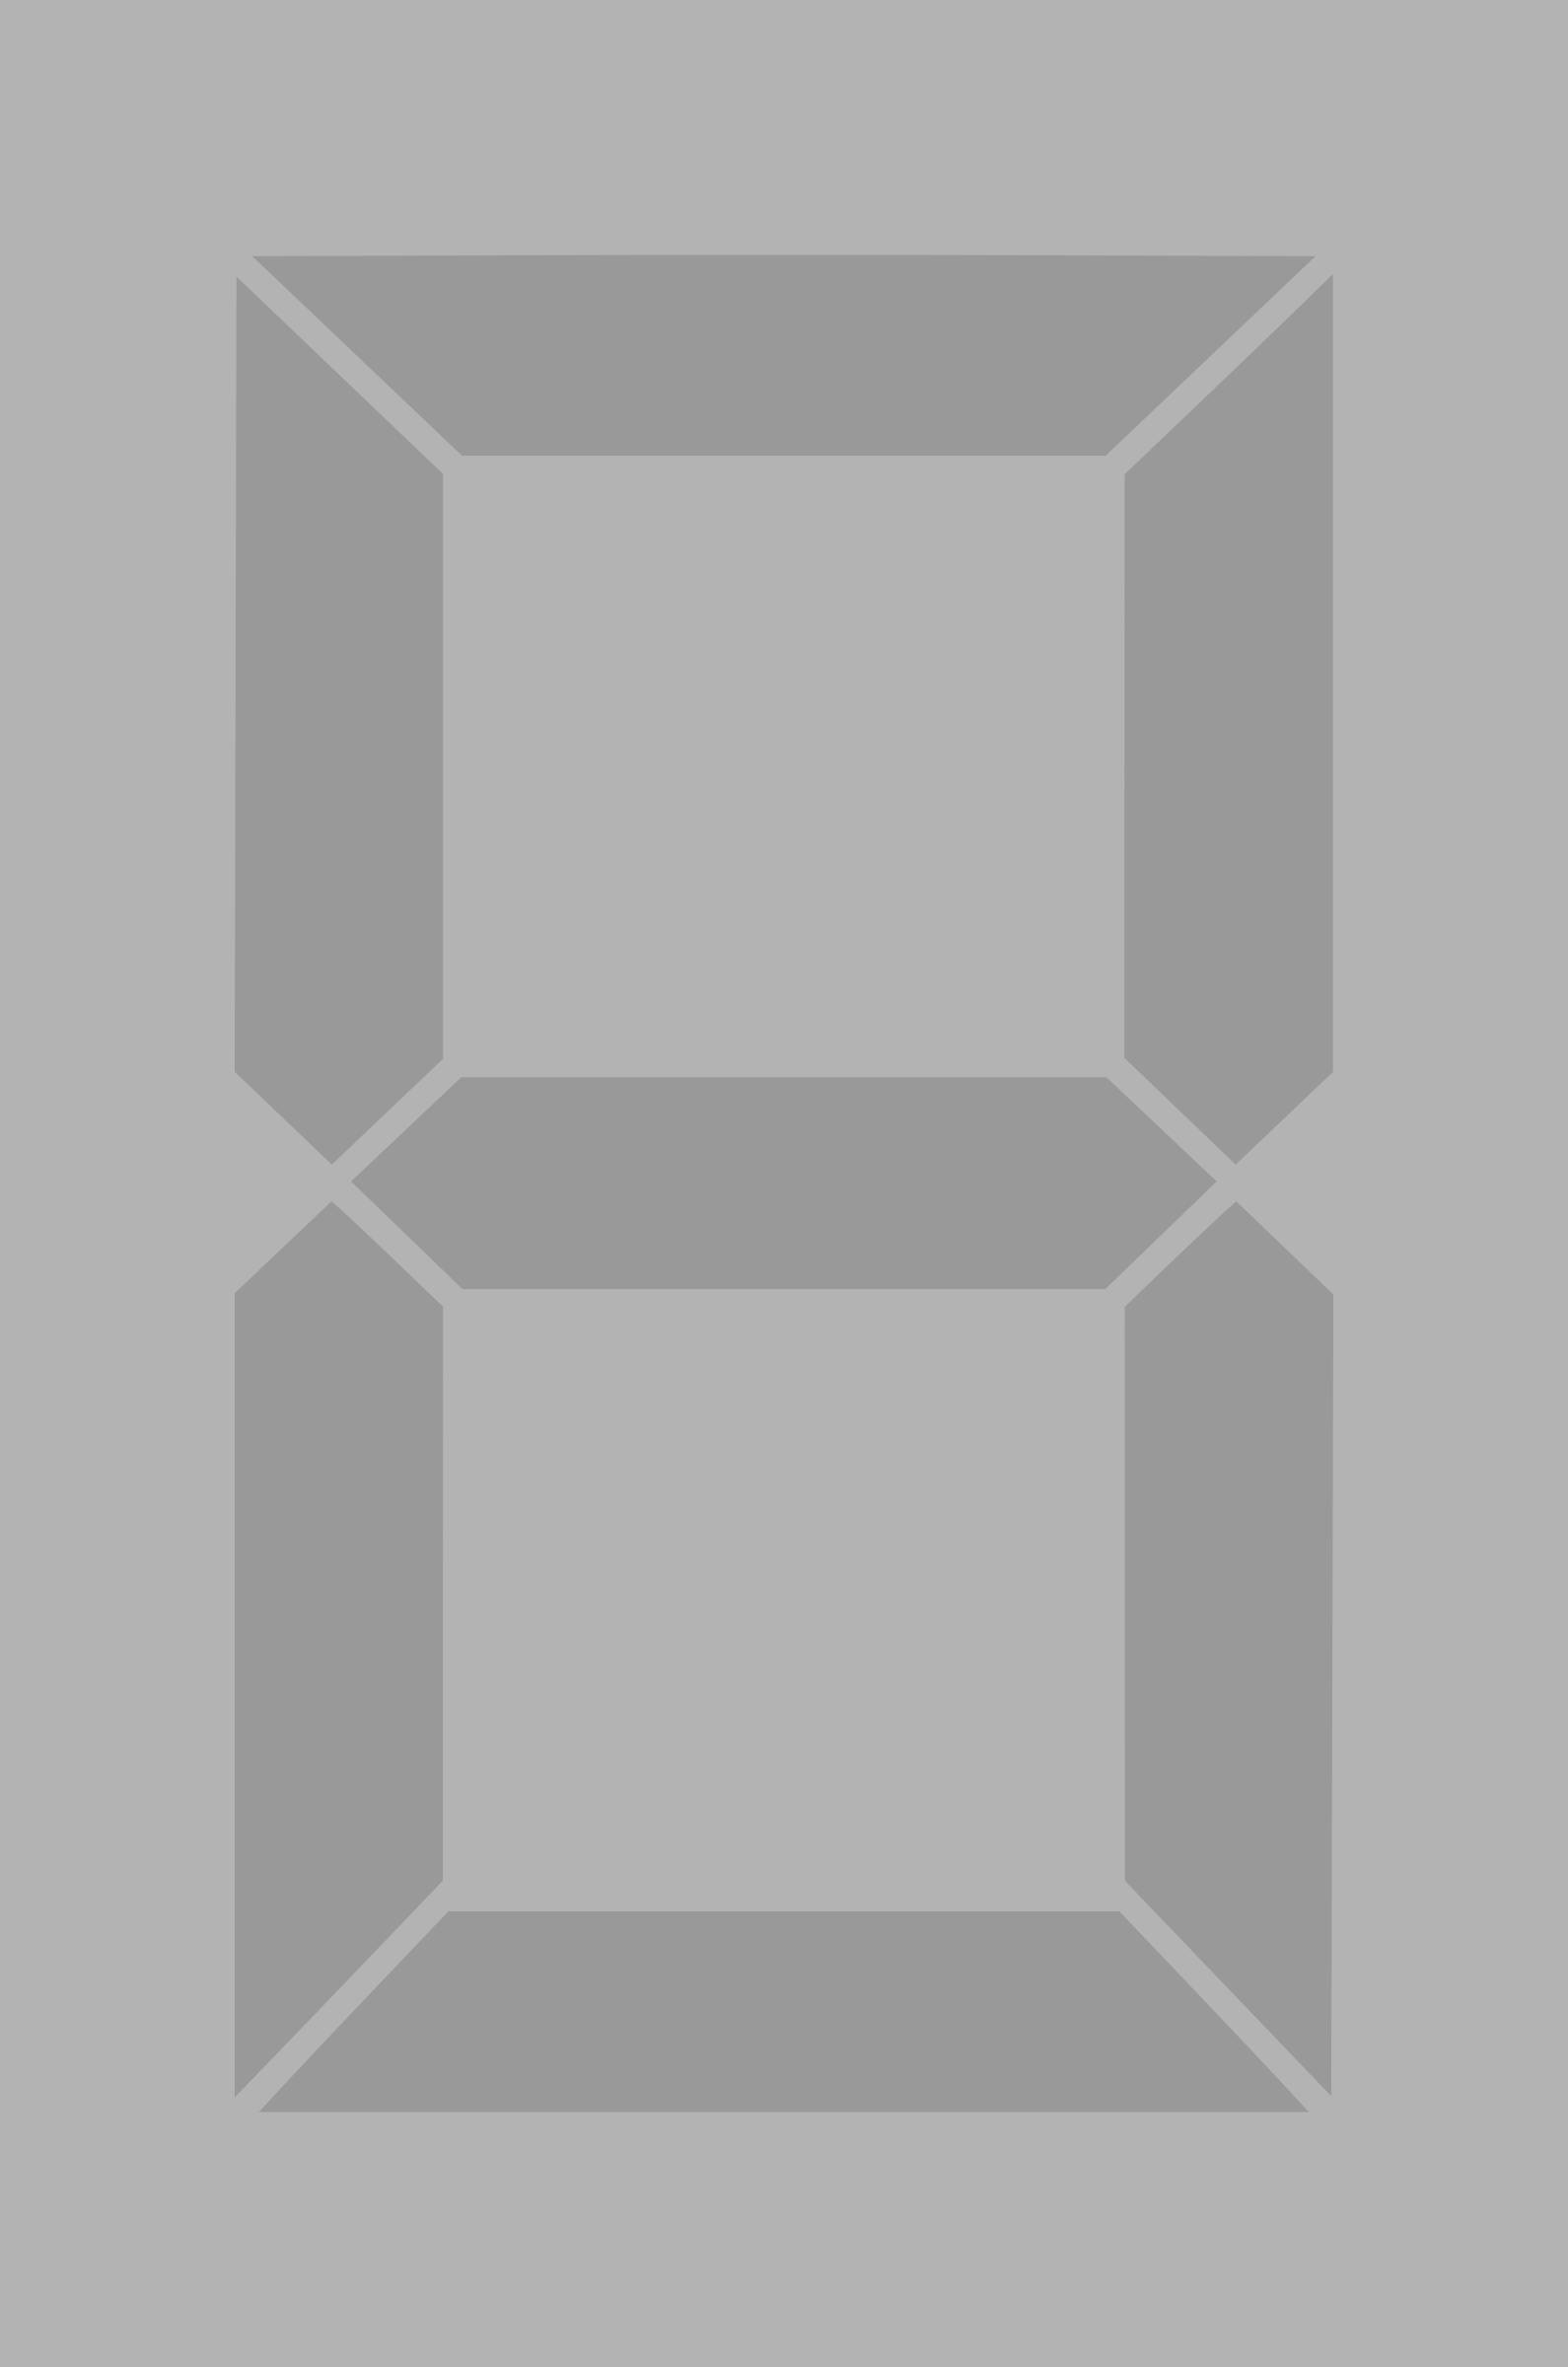 Seven segment display gray off by alex8664